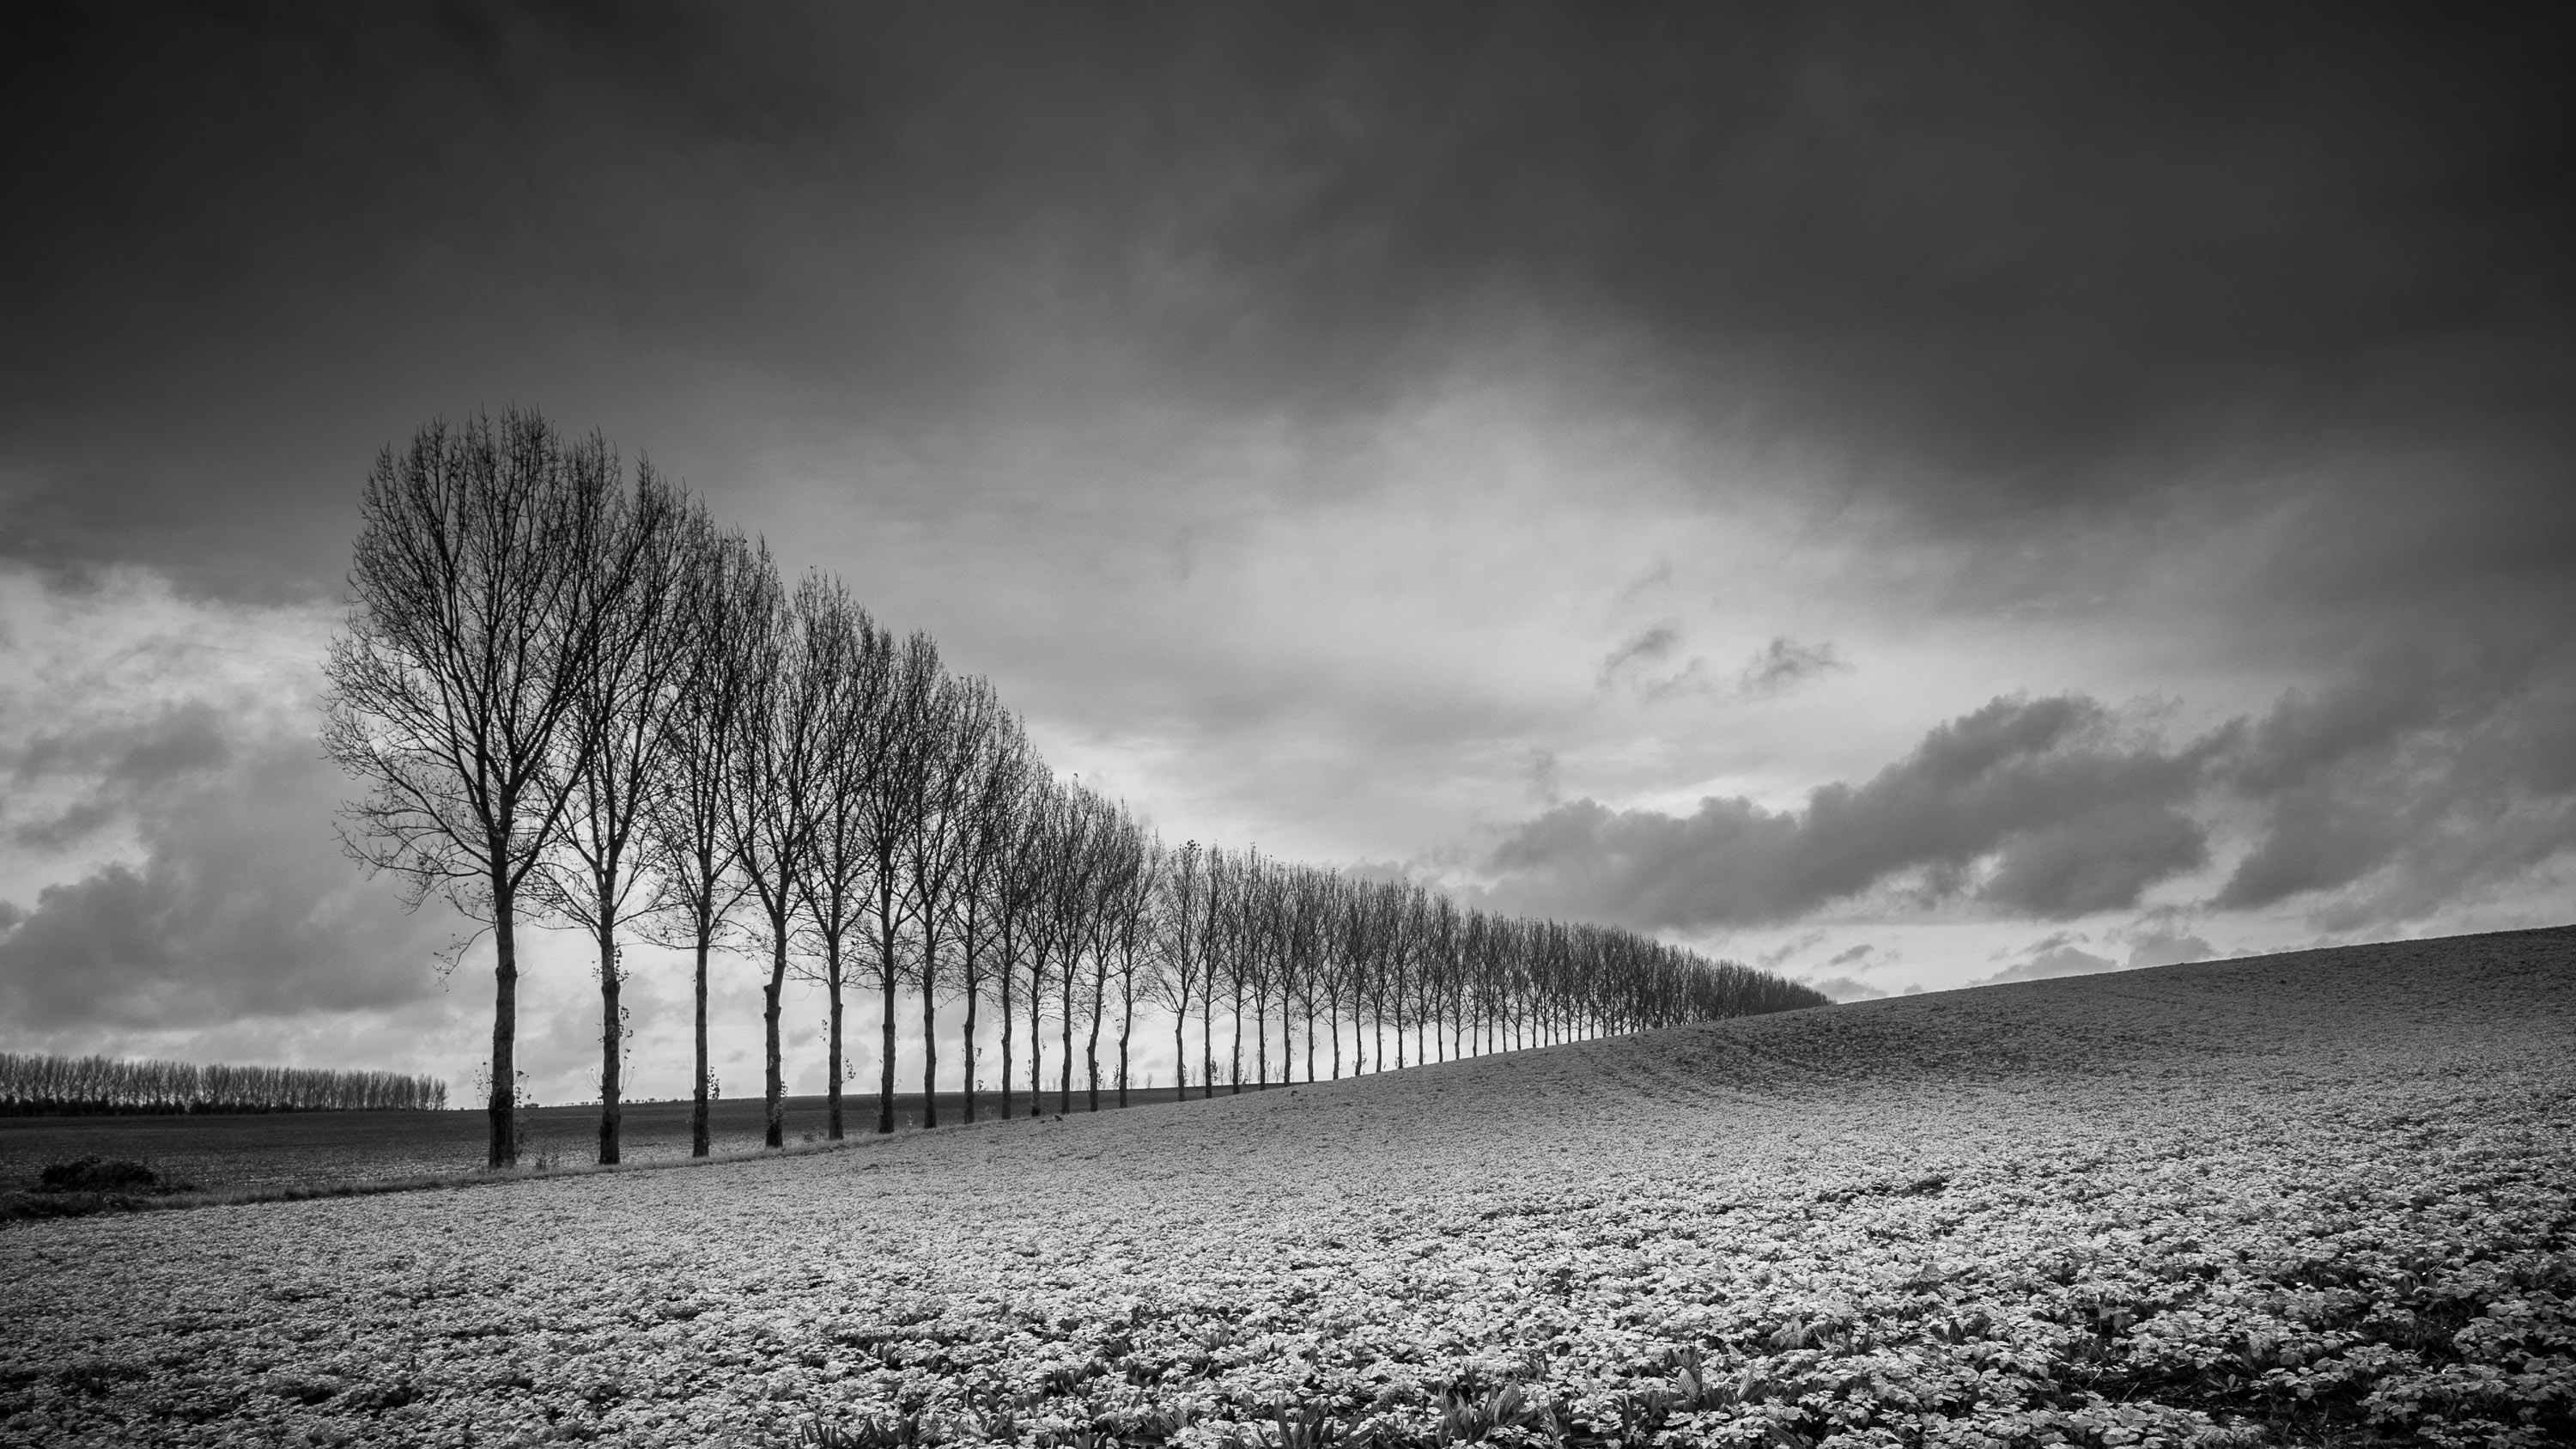 How to master black and white photography techradar